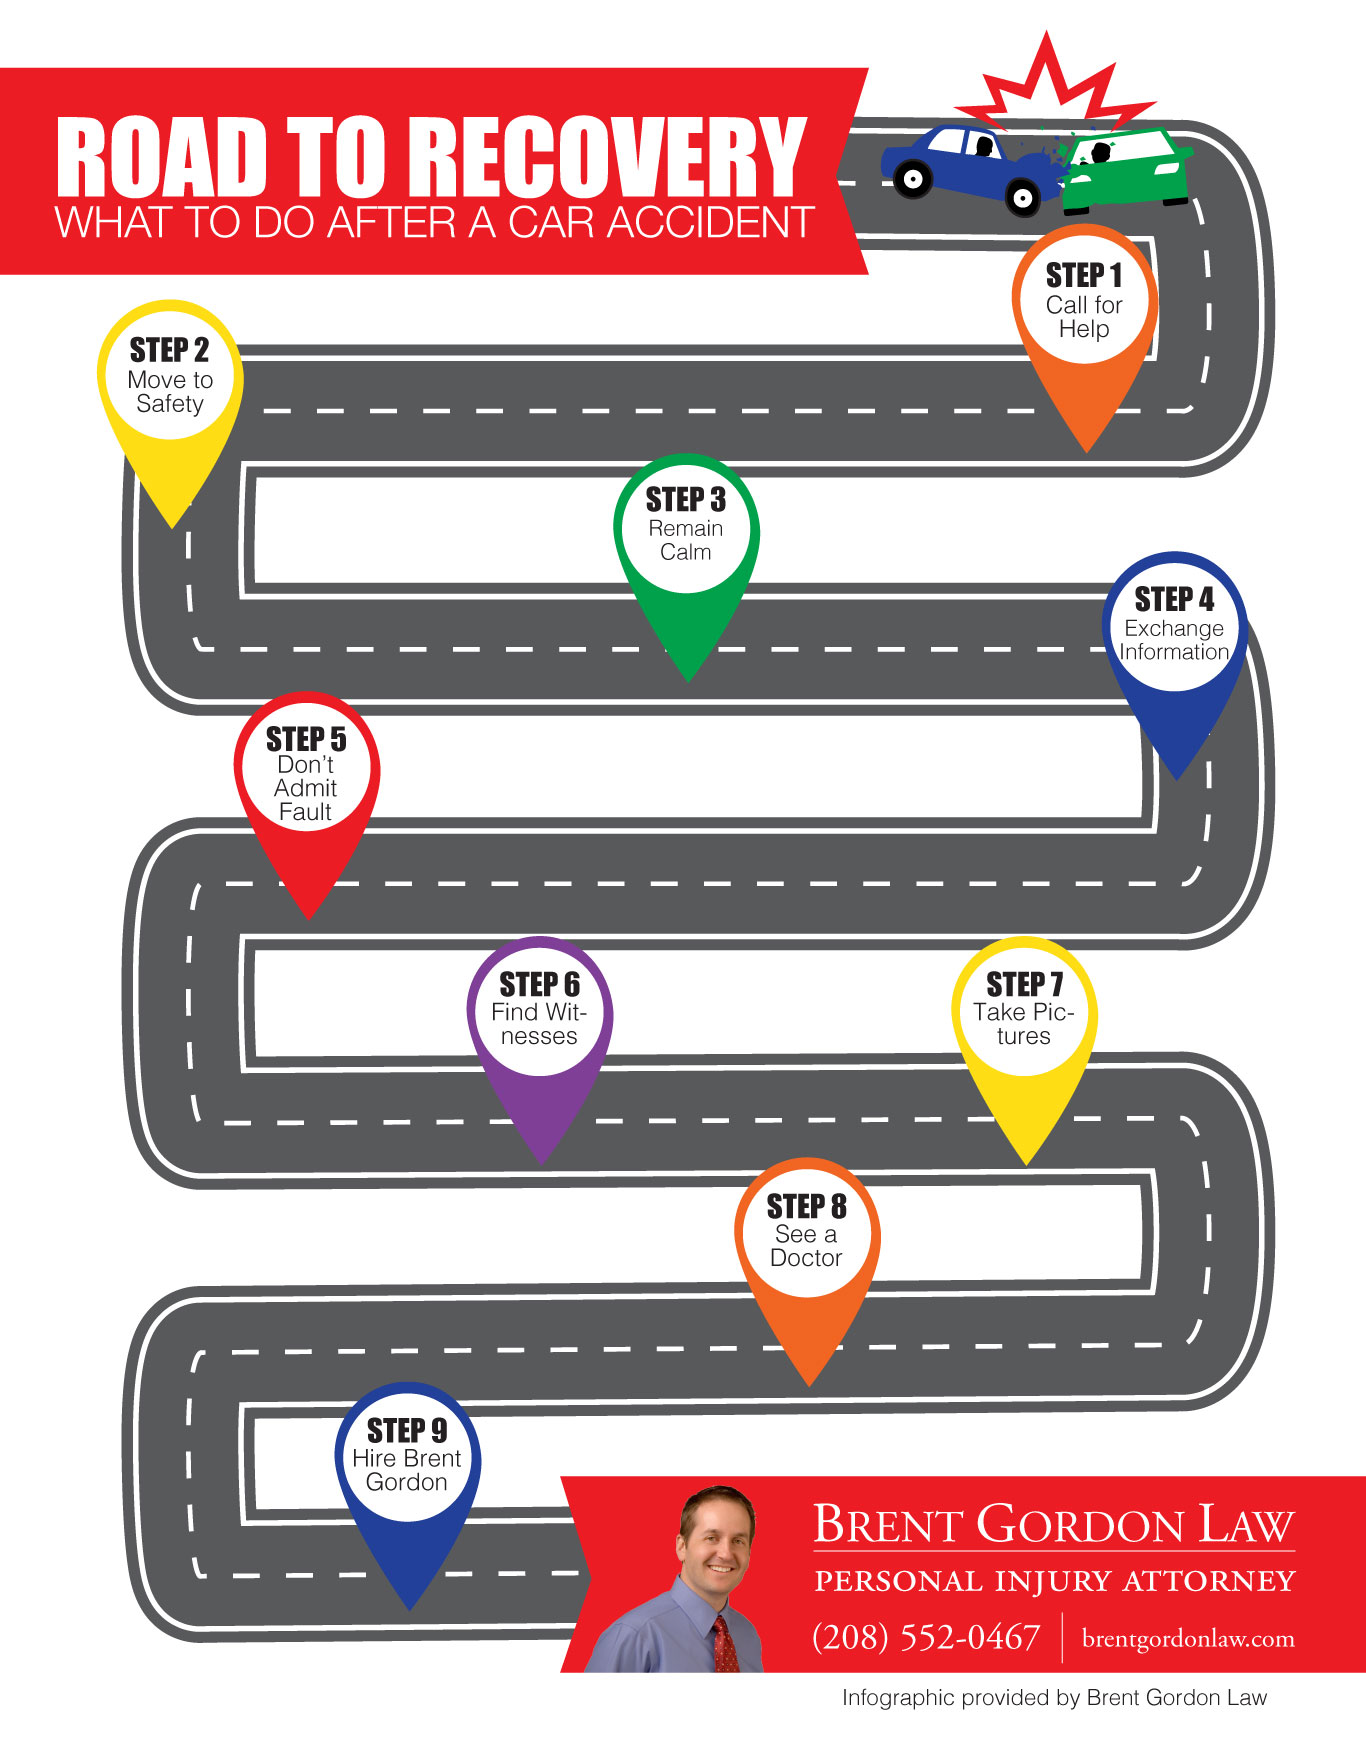 Idaho-Falls_What-to-do-After-a-Car-Accident-Infographic_for-web